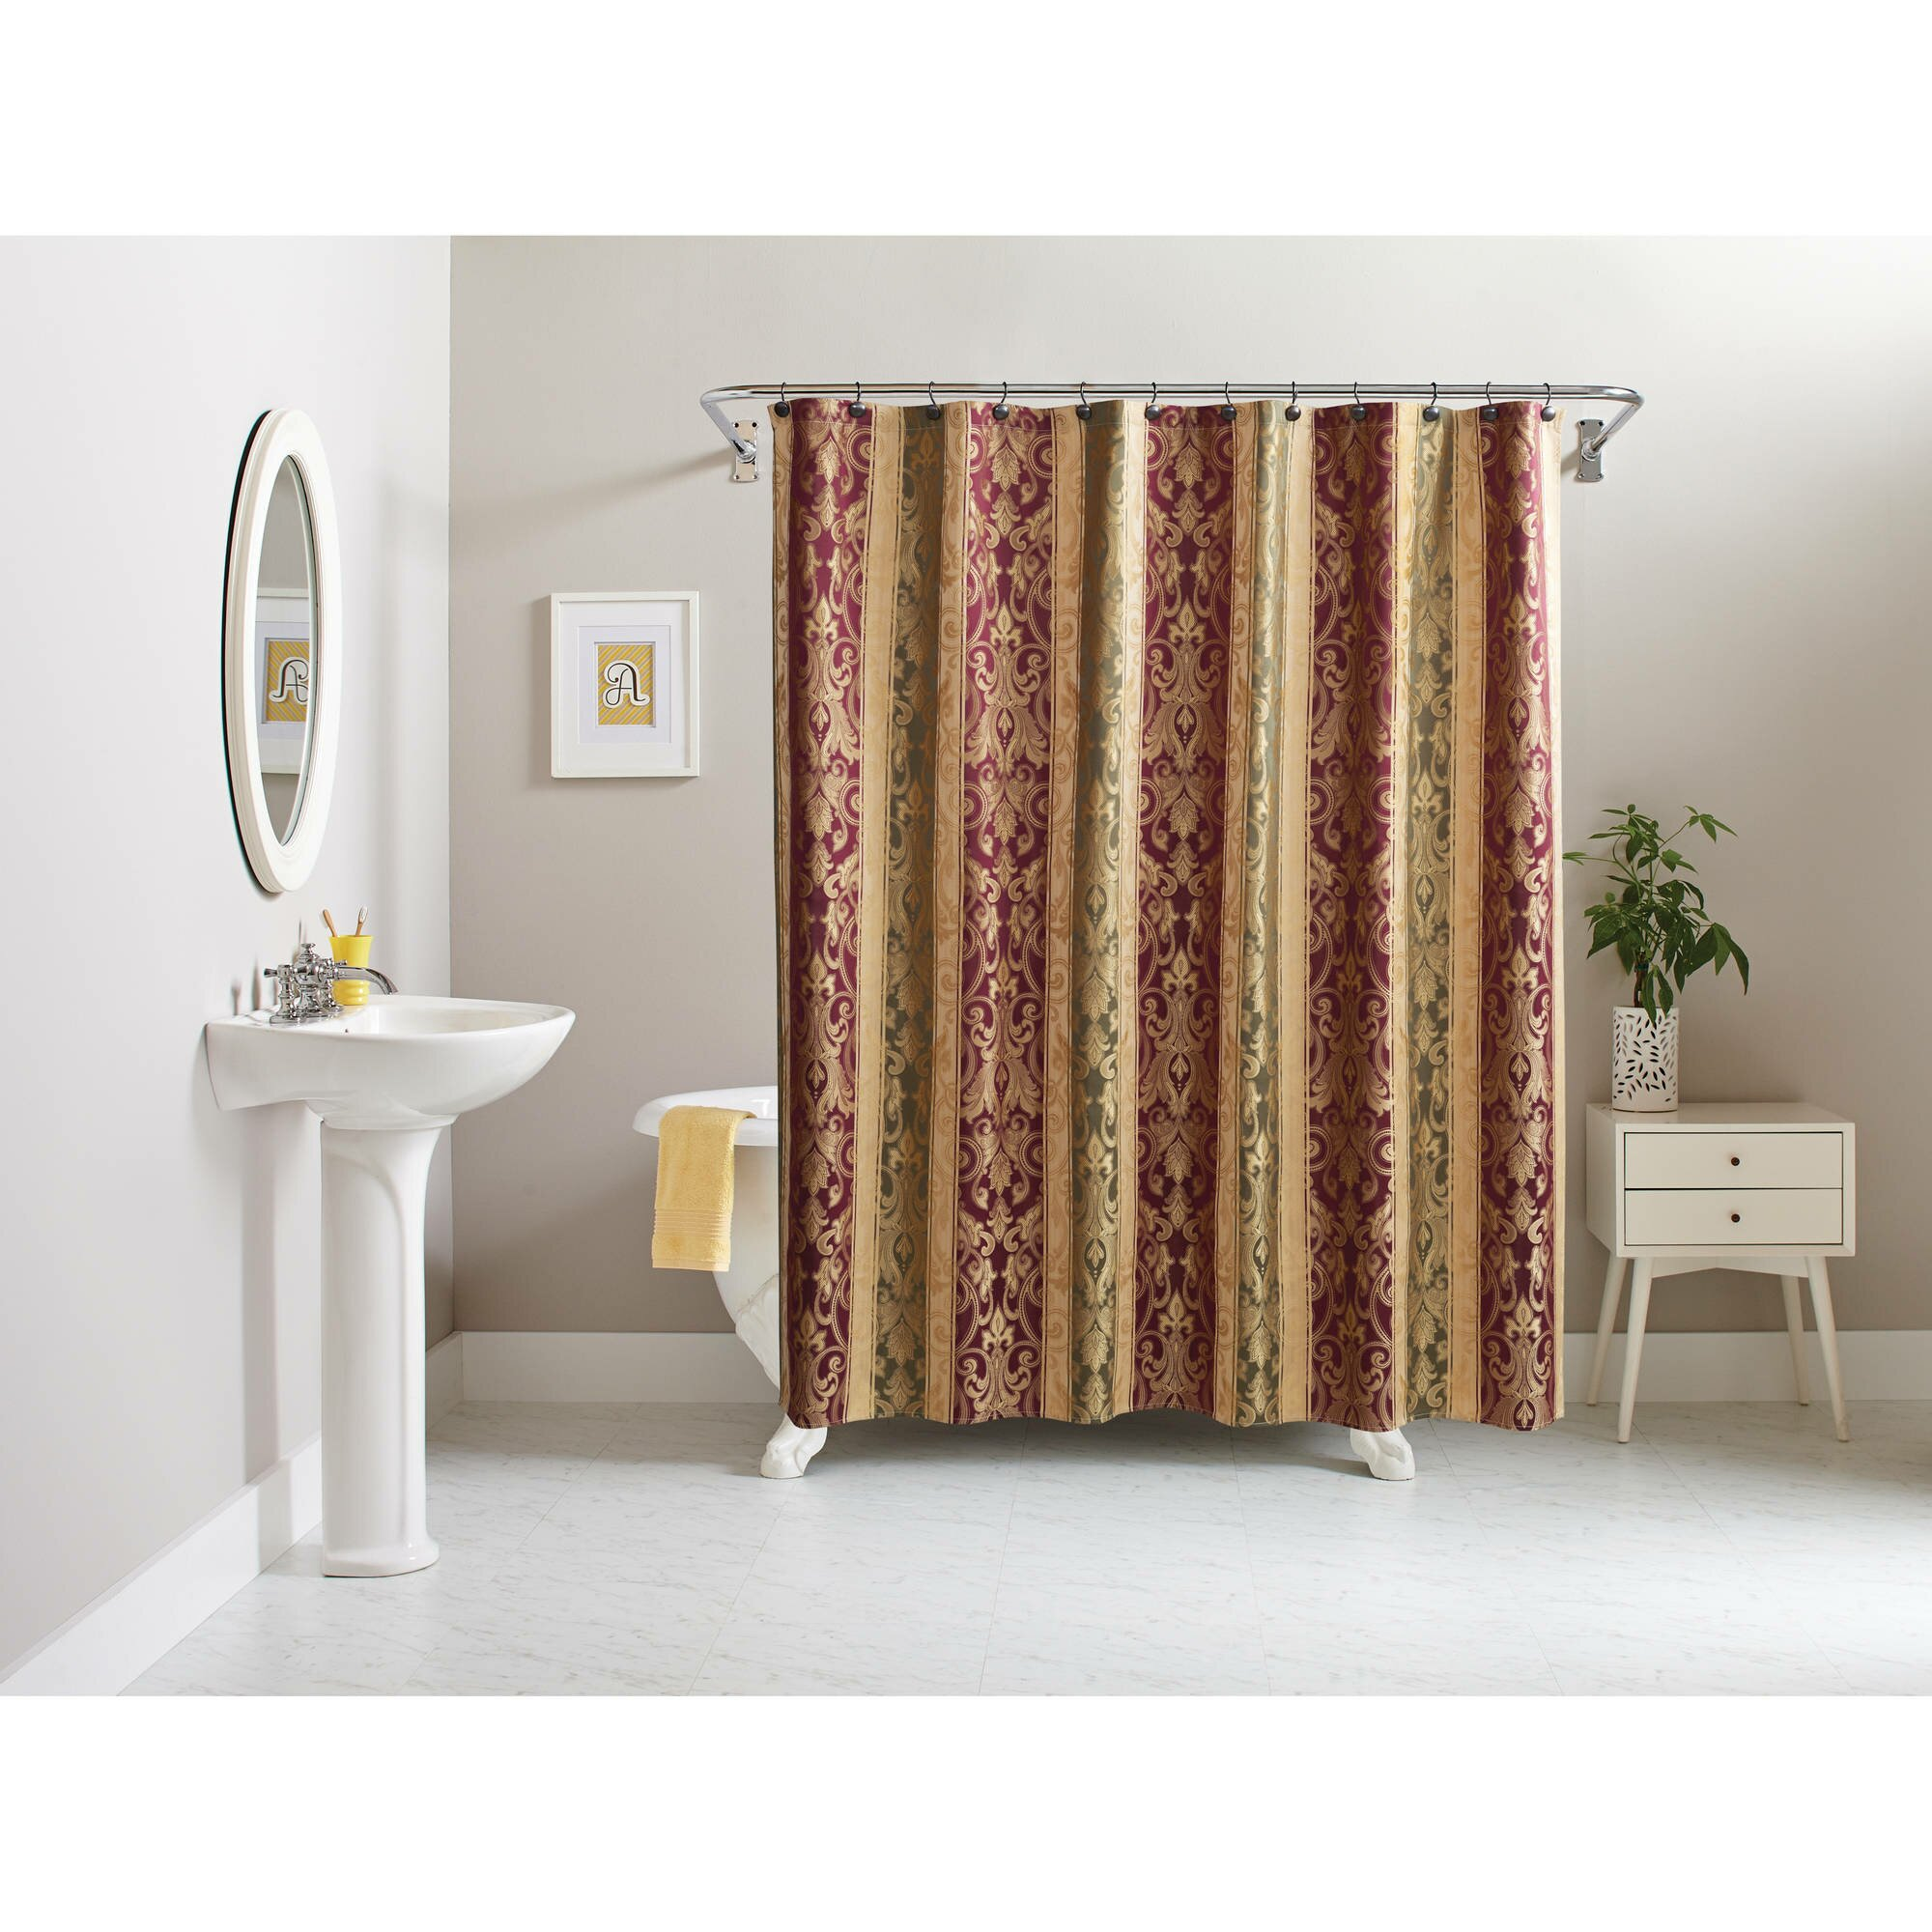 Bathroom Curtains At Walmart Bathroom Curtains Important Walmart Canada Bath